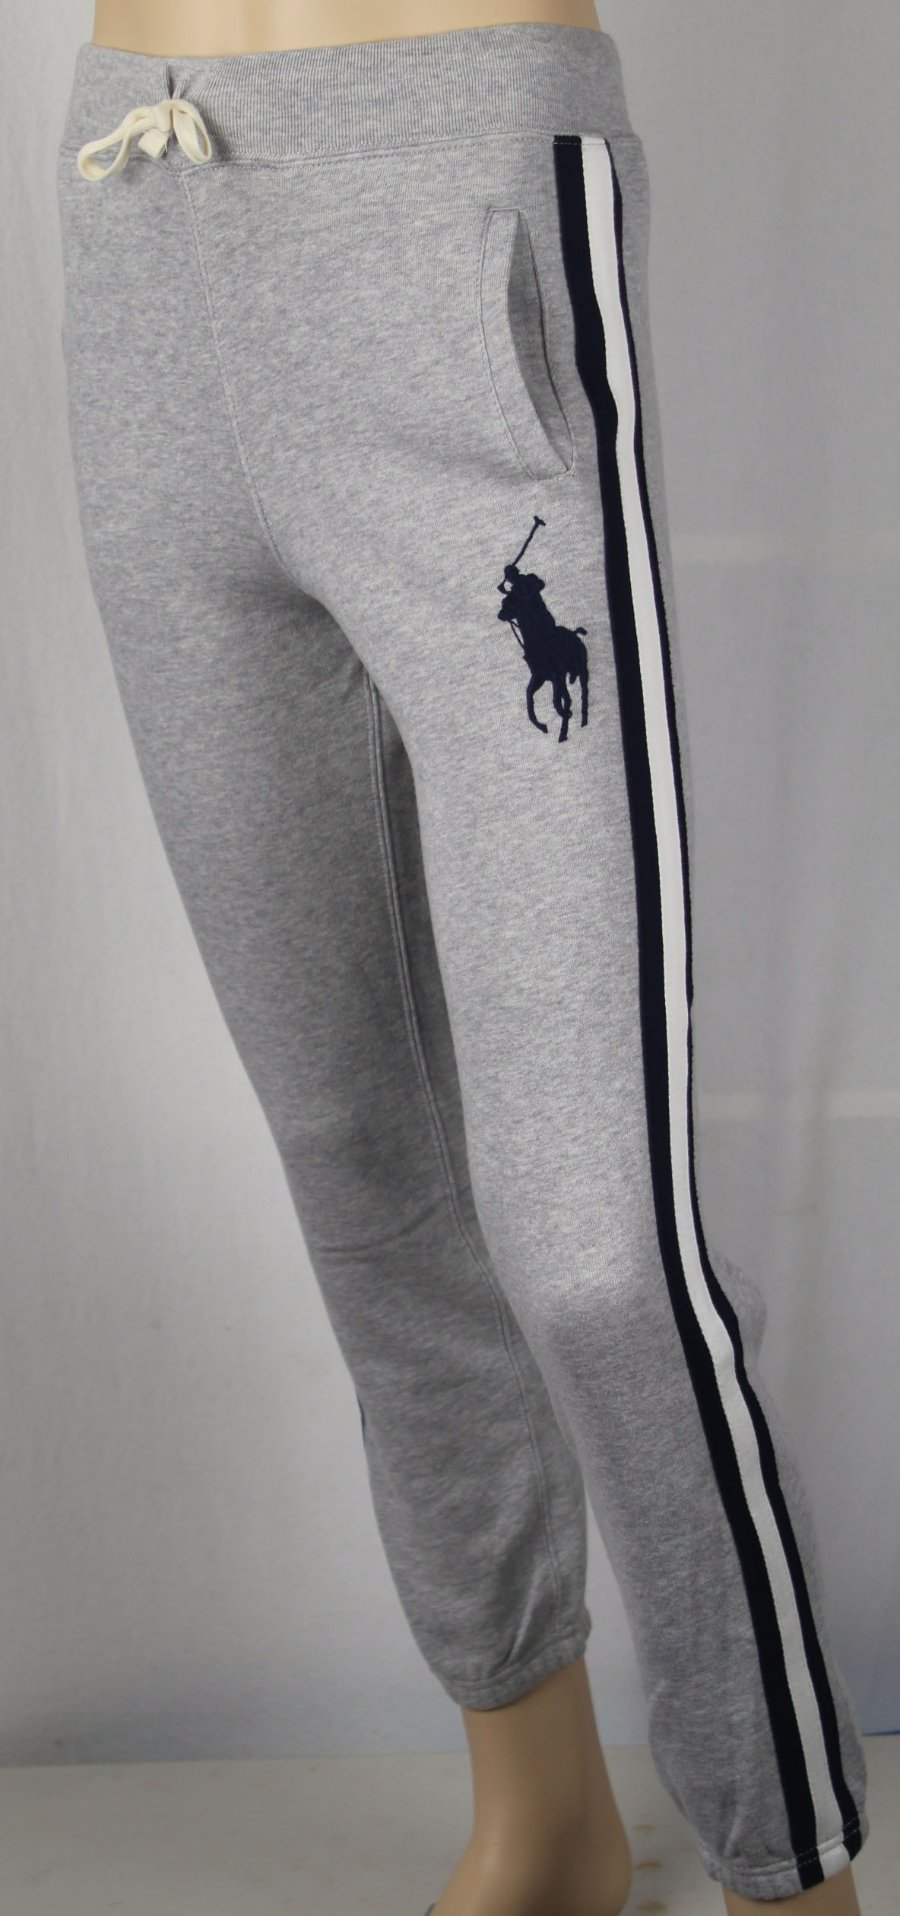 Polo Ralph Lauren Youth Grey Fleece Sweatpants Big Navy Blue Pony NWT